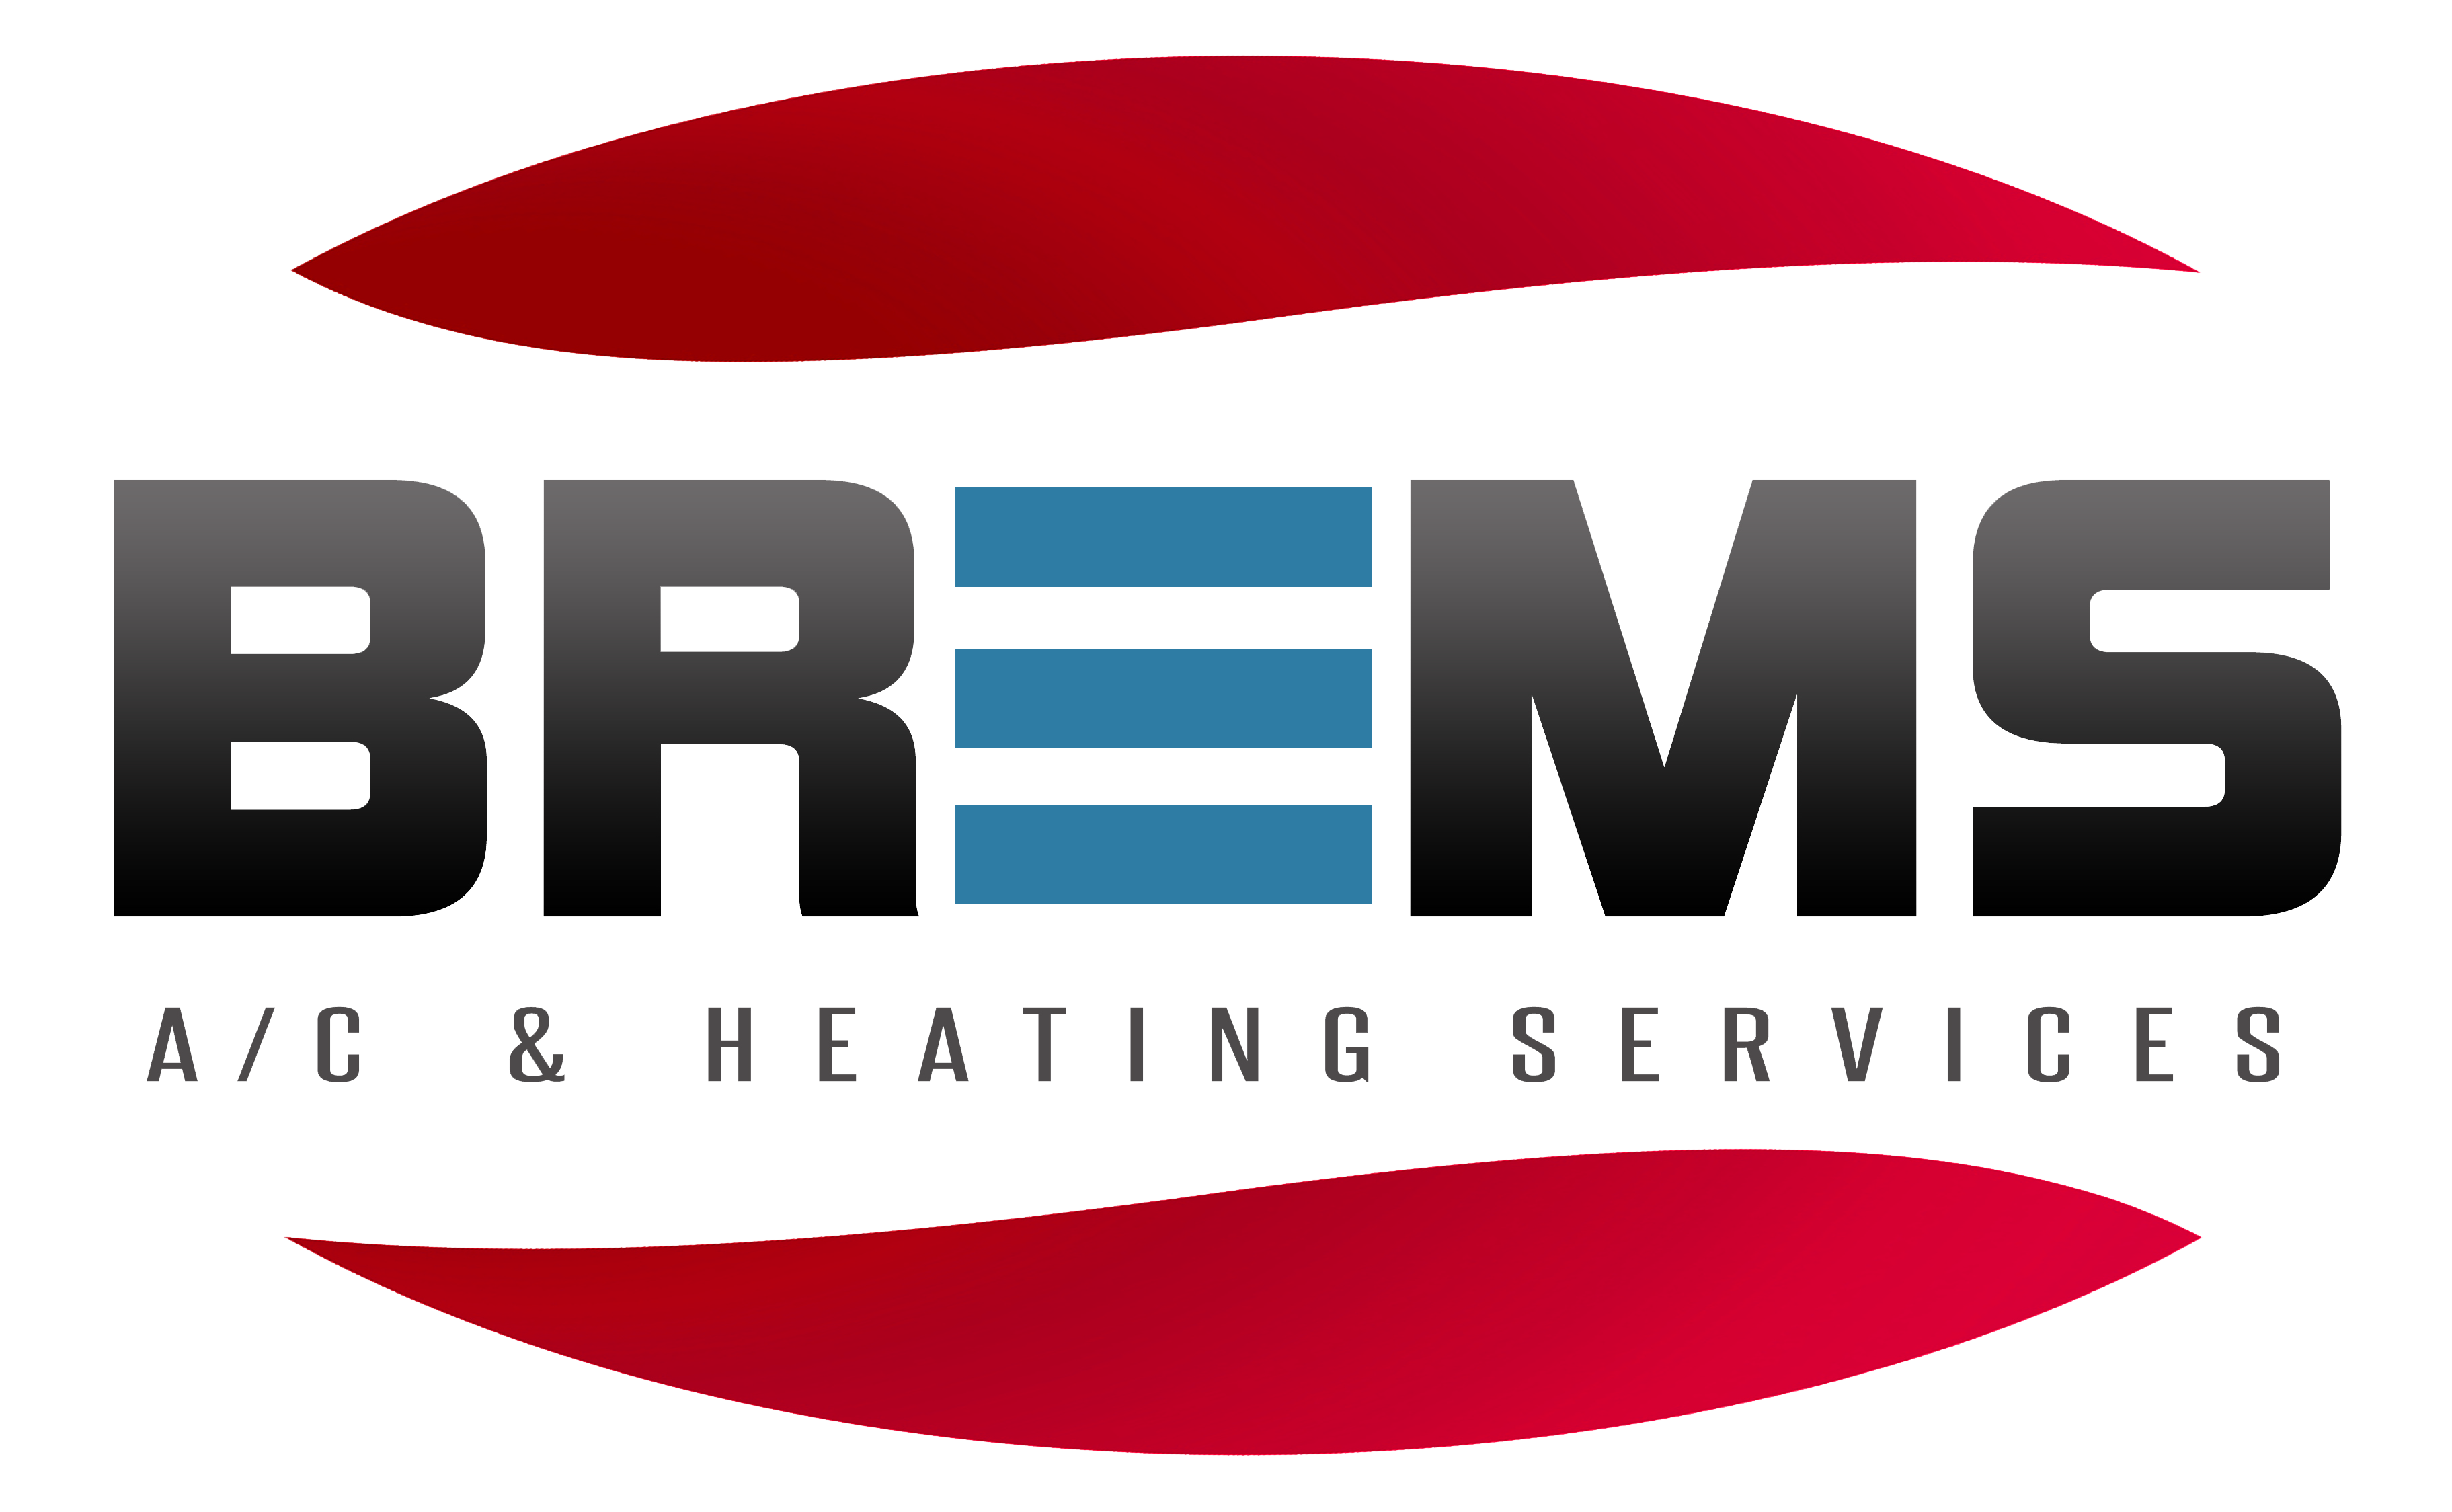 BREMS A/C & Heating